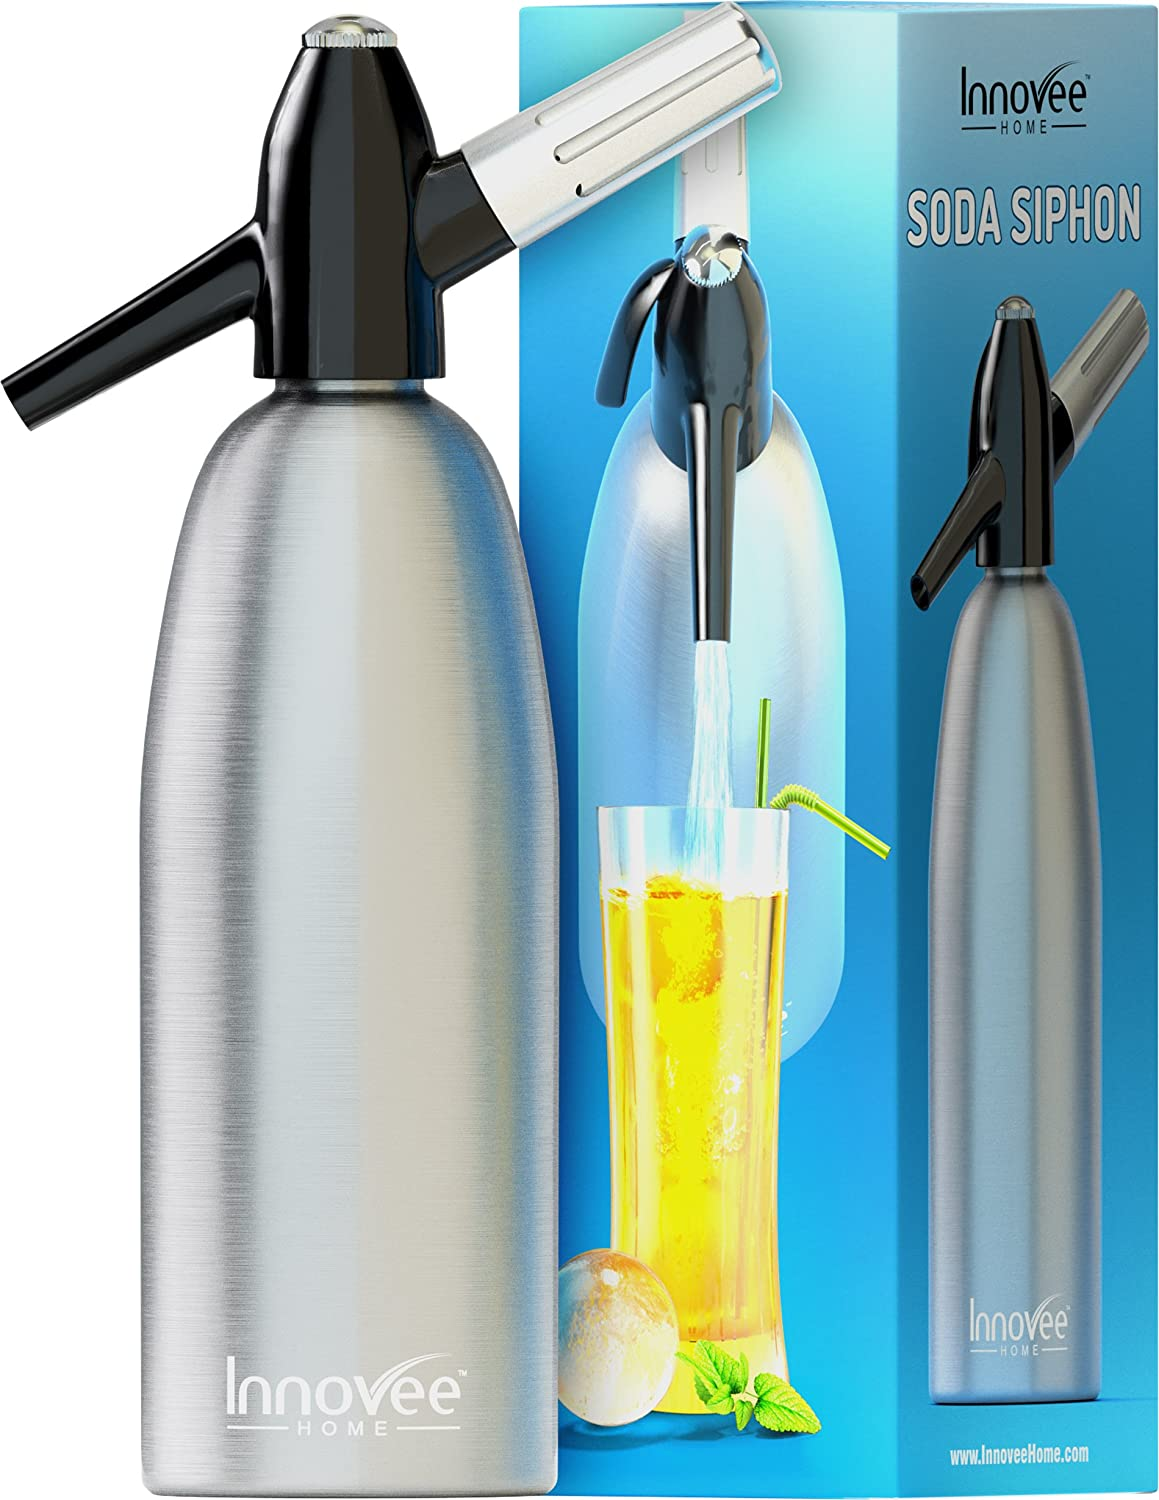 Innovee Soda Siphon Ultimate Soda Maker